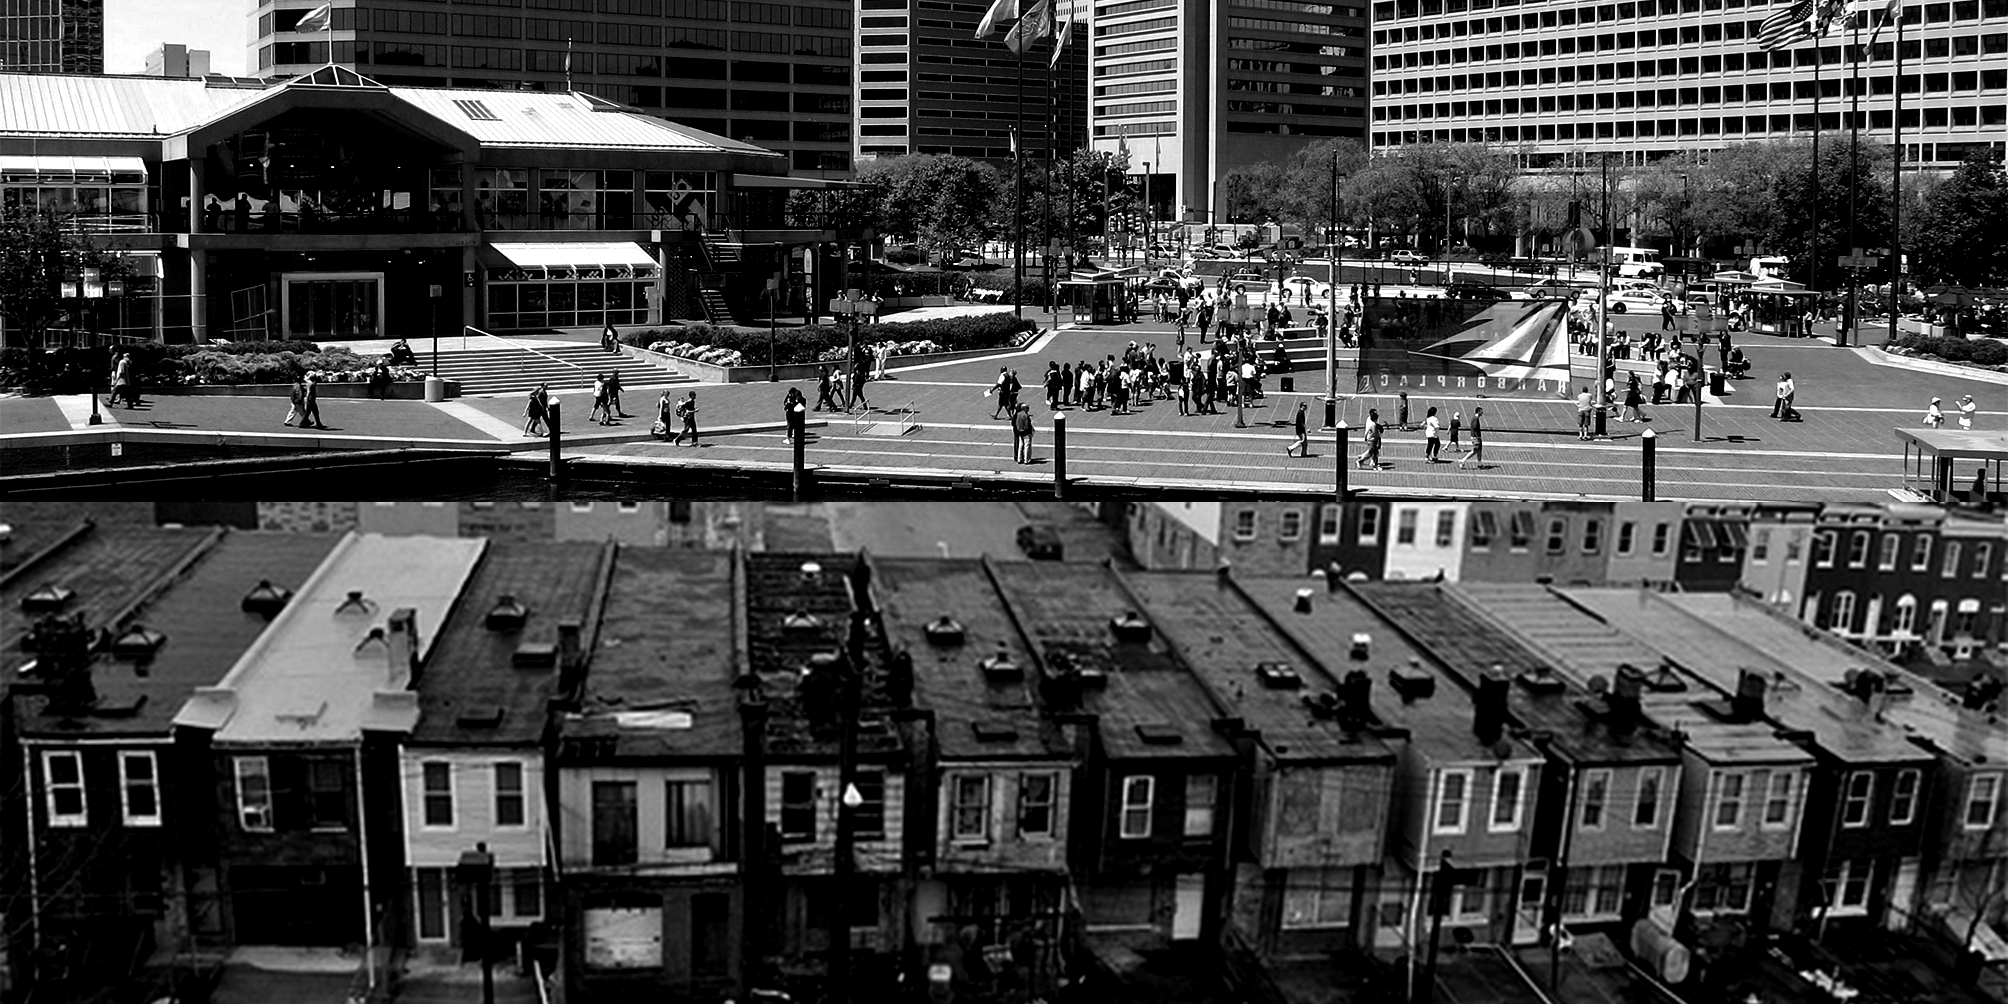 Harbor Place and the other Baltimore